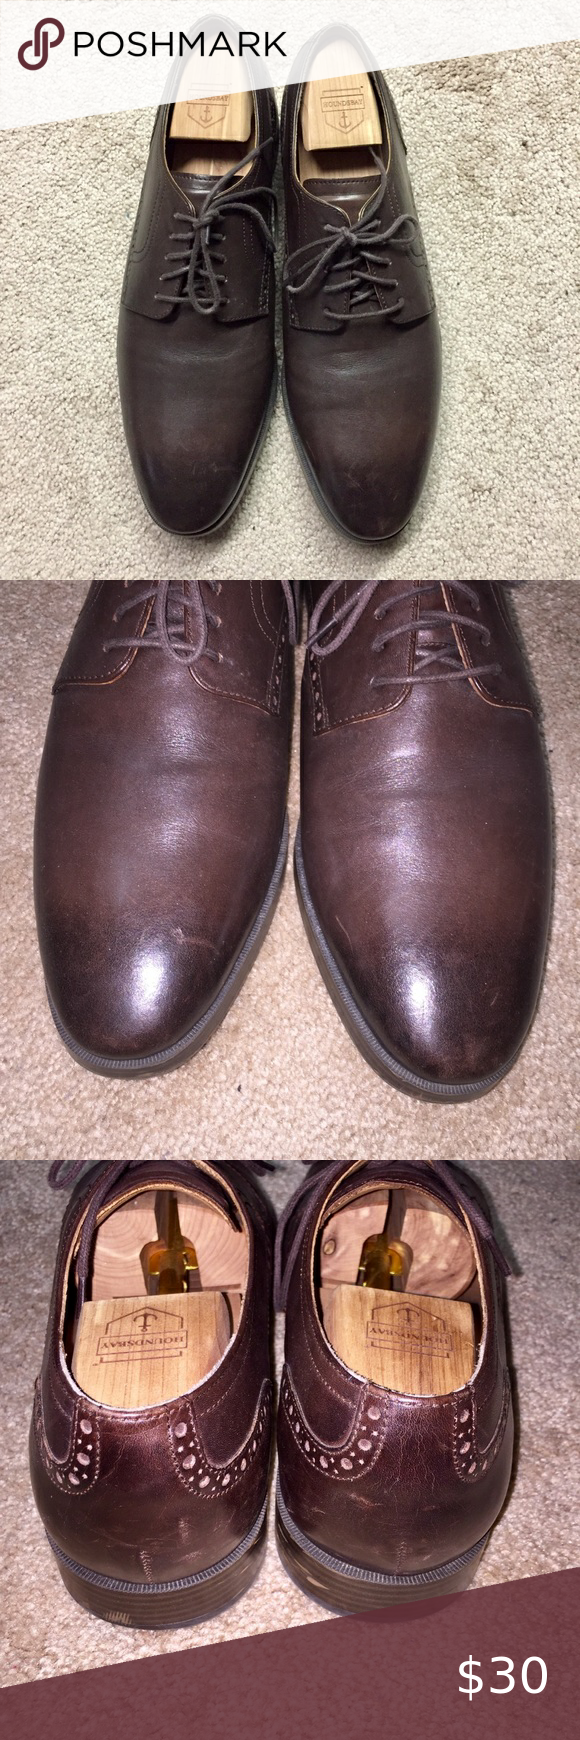 Shoes Sz 10.5M Gently Used Cole Haan